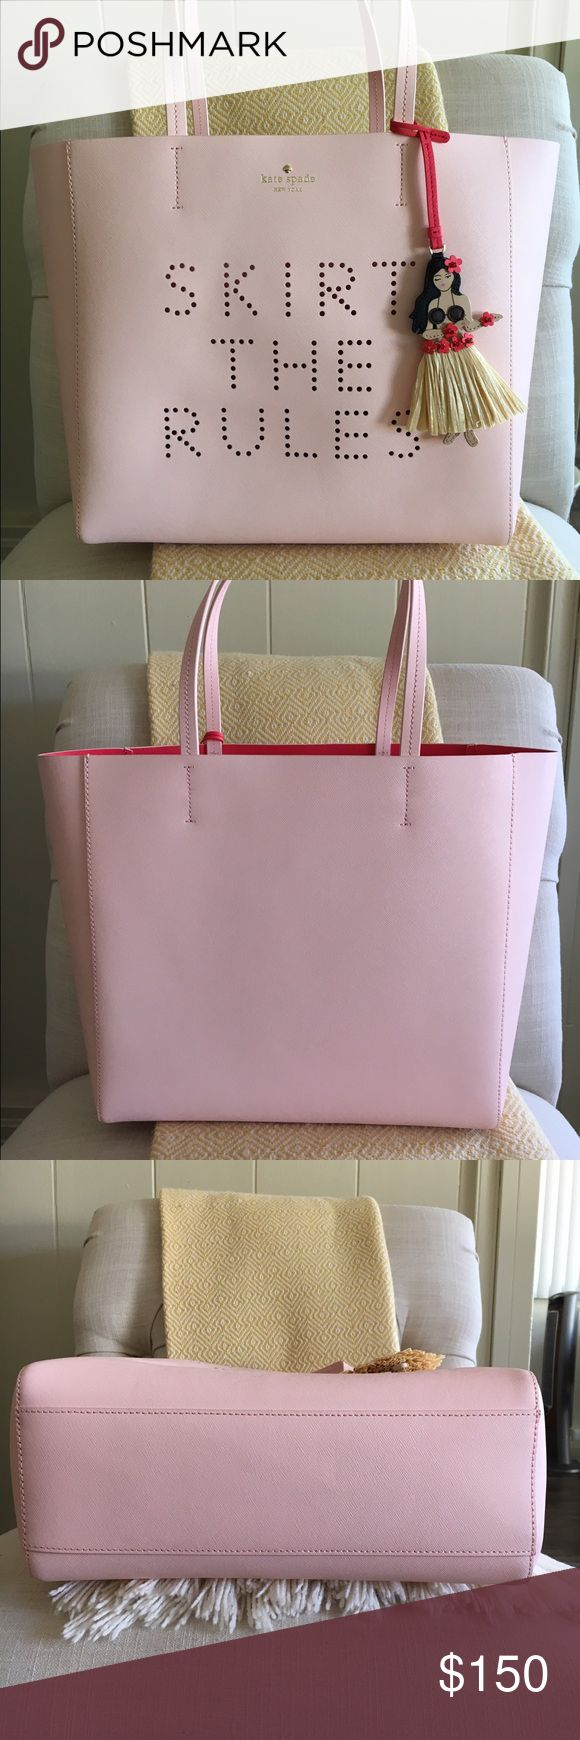 """Kate Spade Skirt The Rules Hallie tote Kate Spade Skirt The Rules Hallie tote in excellent used condition. A darling hula girl charm adorns a Saffiano leather tote featuring a perforated 'skirt the rules' at the front for a fun, modern update. A bold interior hue completes the chic summer look. Approximate size is 12 ½""""W x 12""""H x 4""""D and 8 ½"""" strap drop. No holds or trades please. kate spade Bags"""